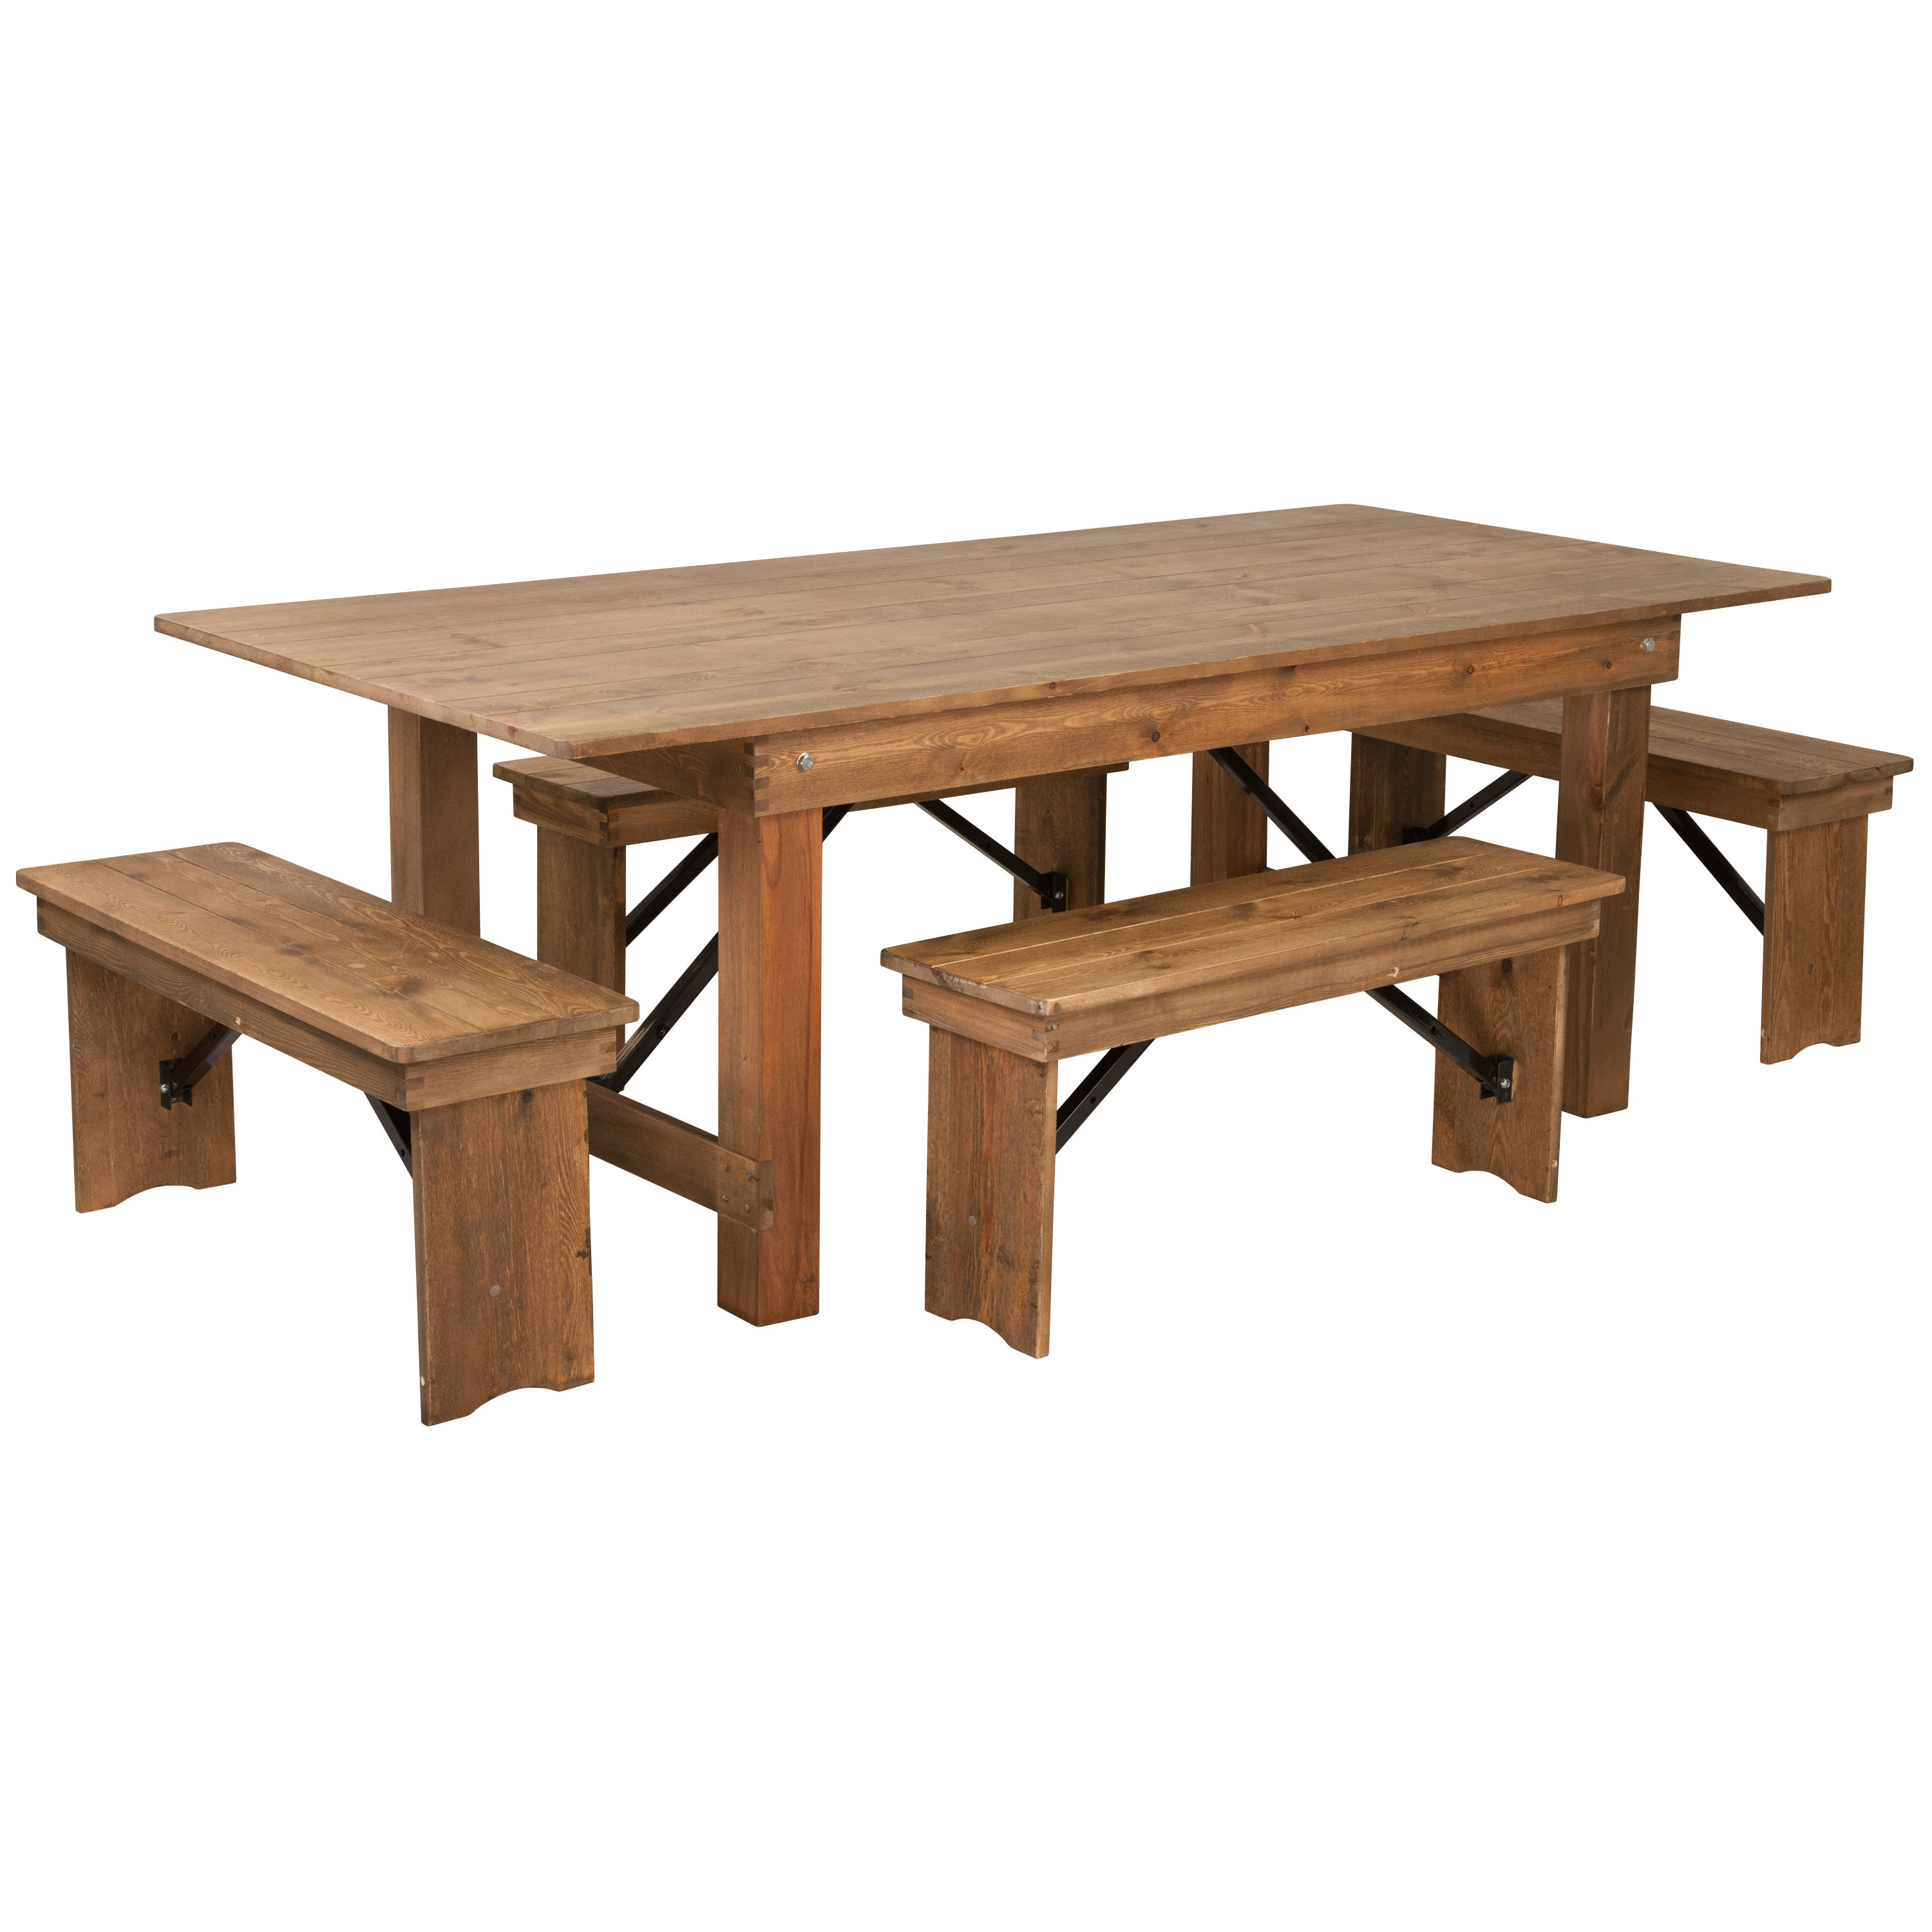 Flash Furniture Hercules Rustic Pine Wood 5pc Dining Room Set With Bench